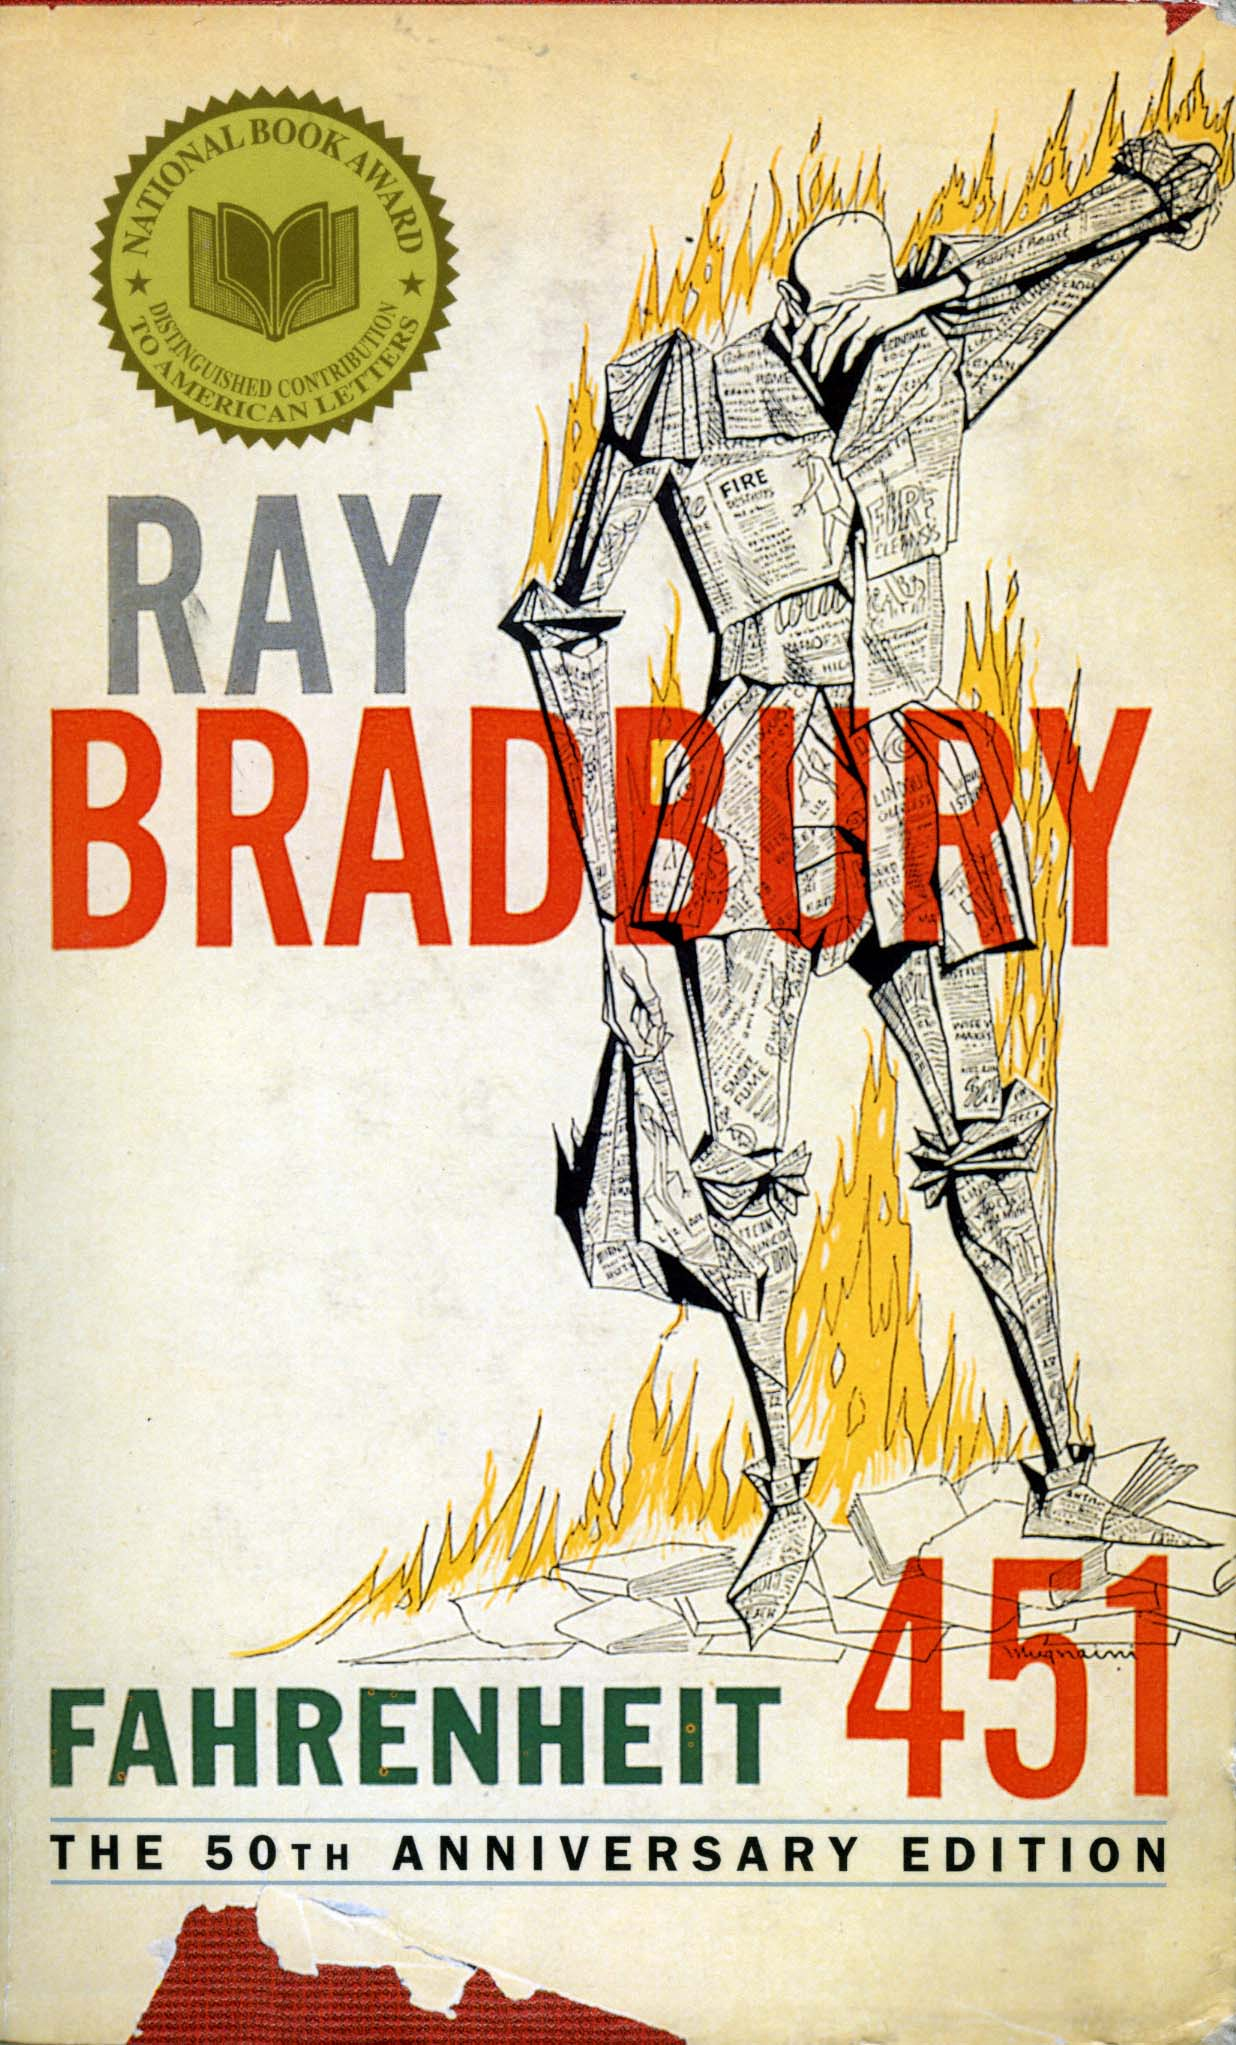 A tribute to Ray Bradbury in internet error code